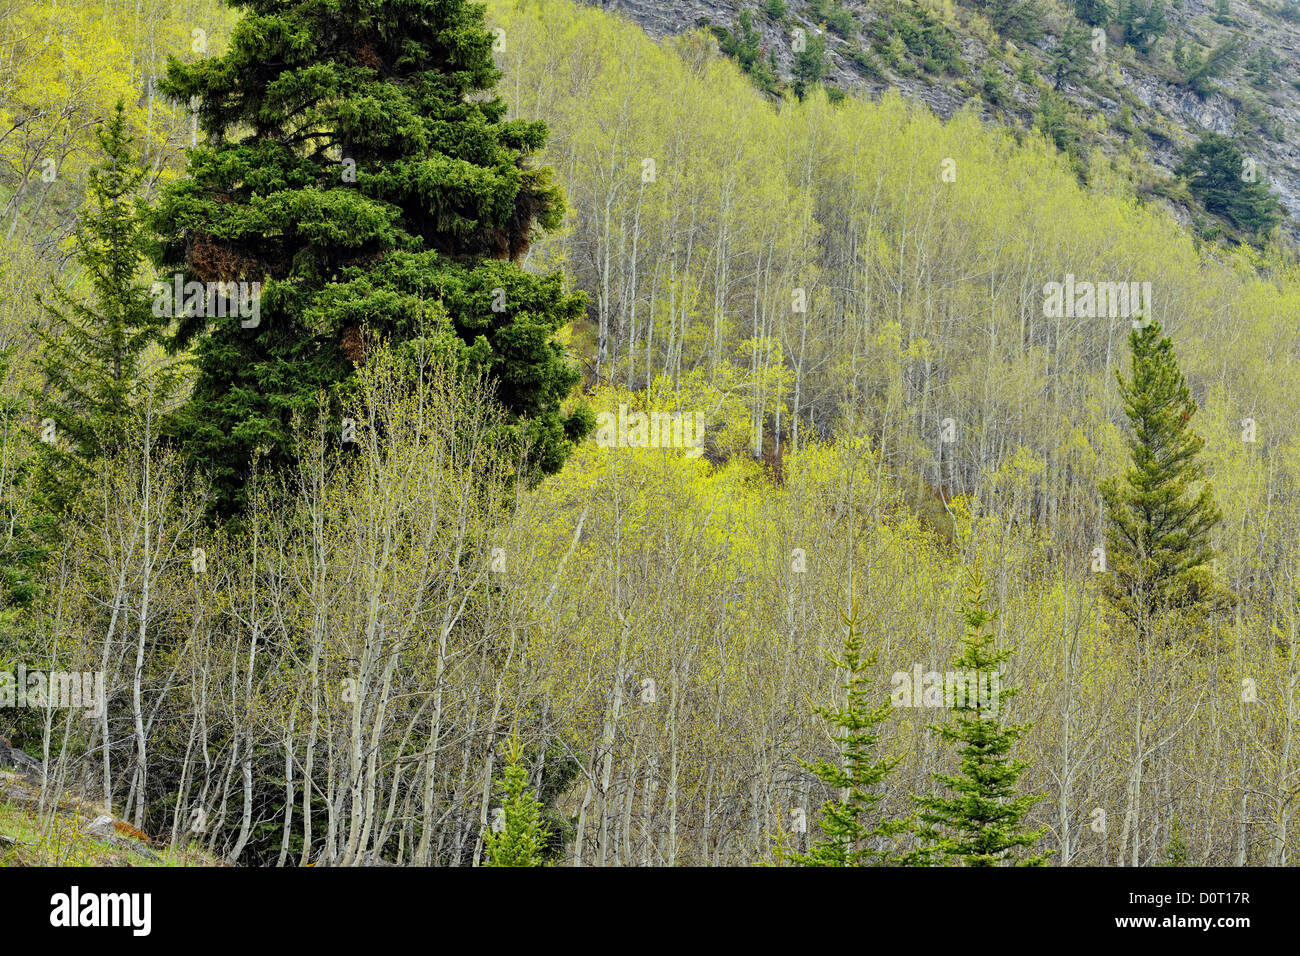 Aspens leafing out on the slopes of Cirrus Mountain, Banff National Park, Alberta, Canada - Stock Image